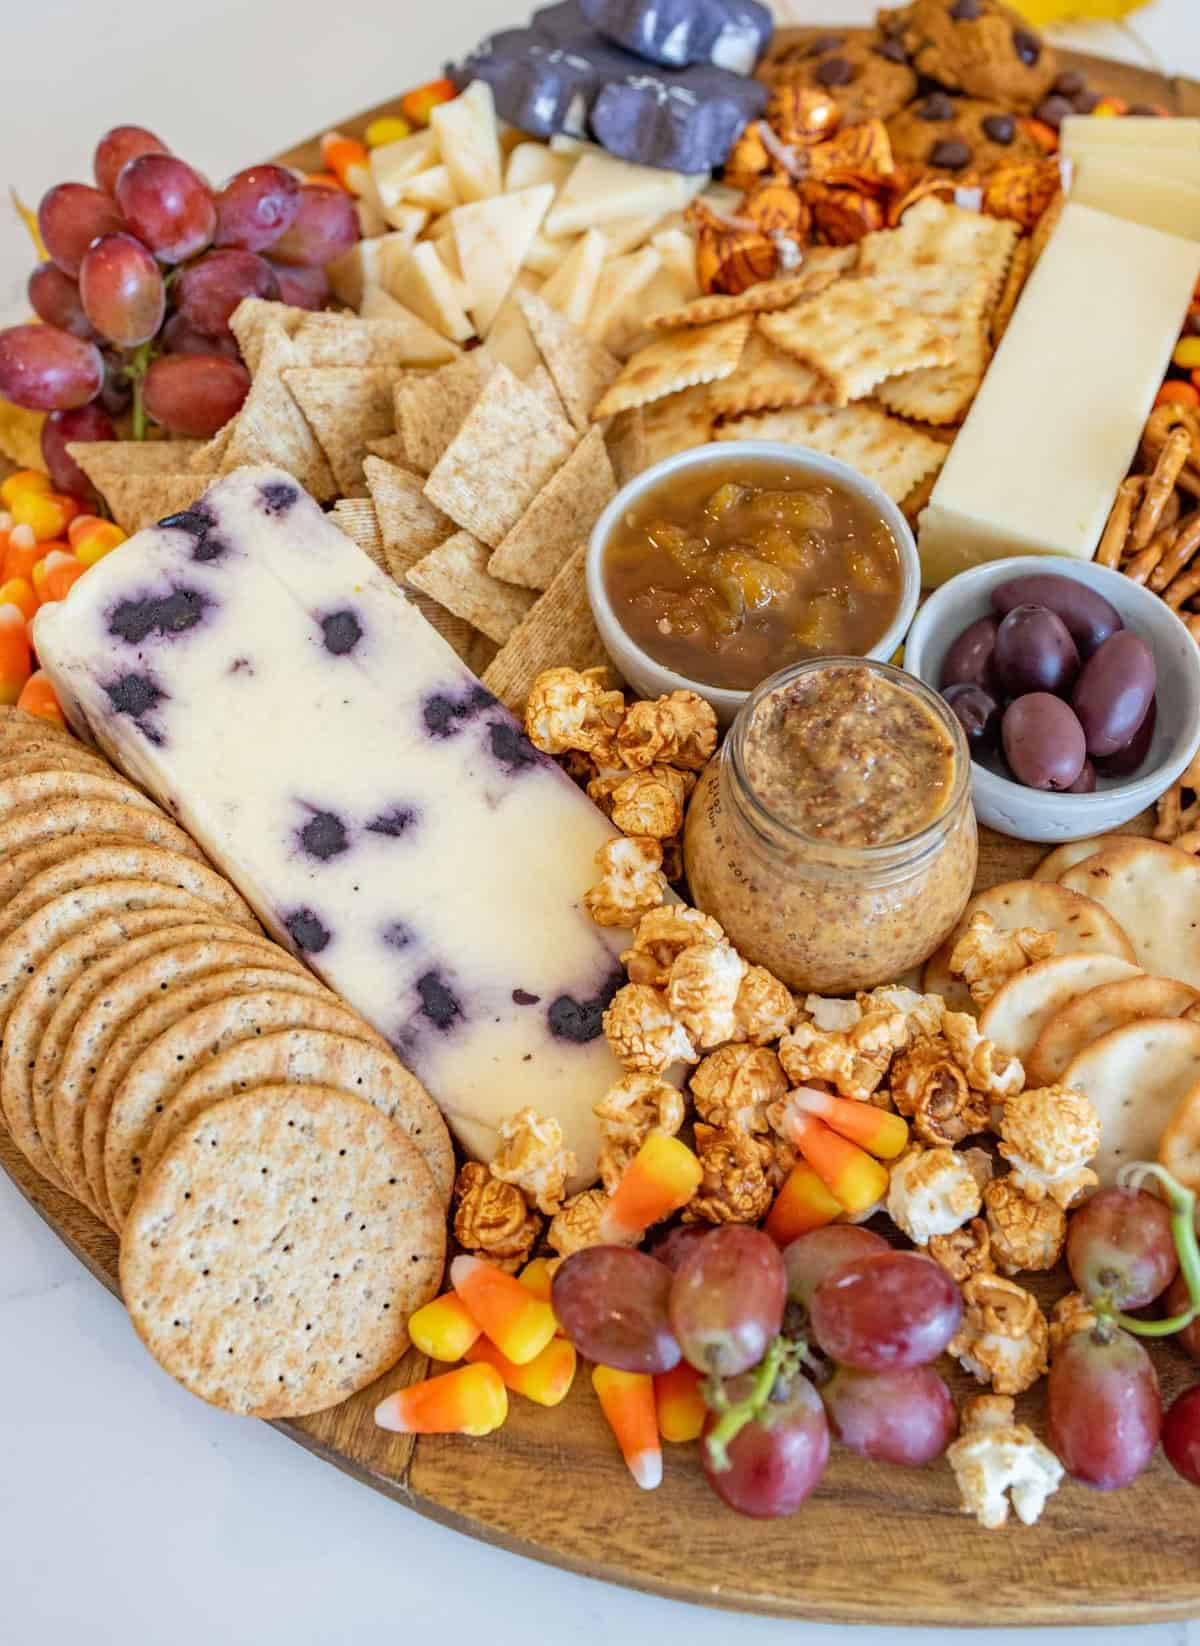 Fun and festive Halloween Cheese board made with simple cheese, crackers, pumpkins for garnish, and or coarse, lots of Halloween candy.